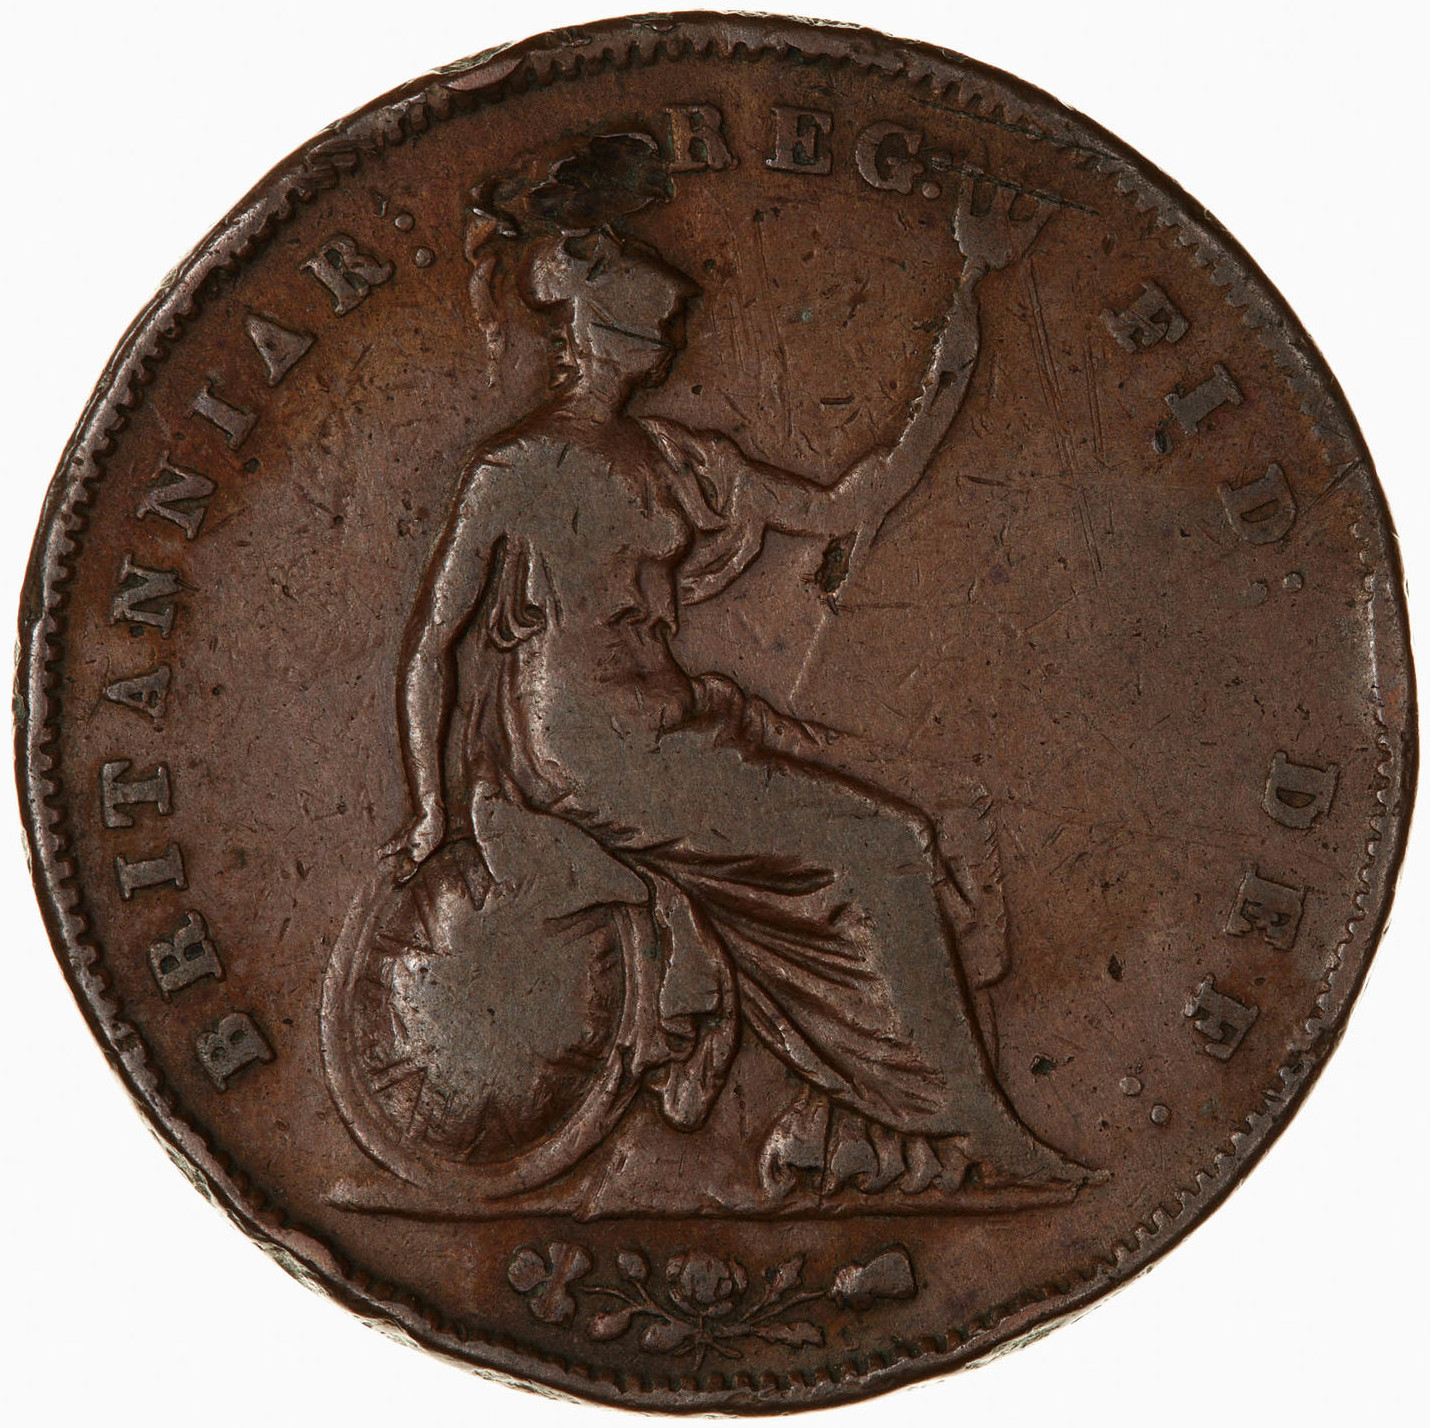 Penny 1851: Photo Coin - Penny, Queen Victoria, Great Britain, 1851